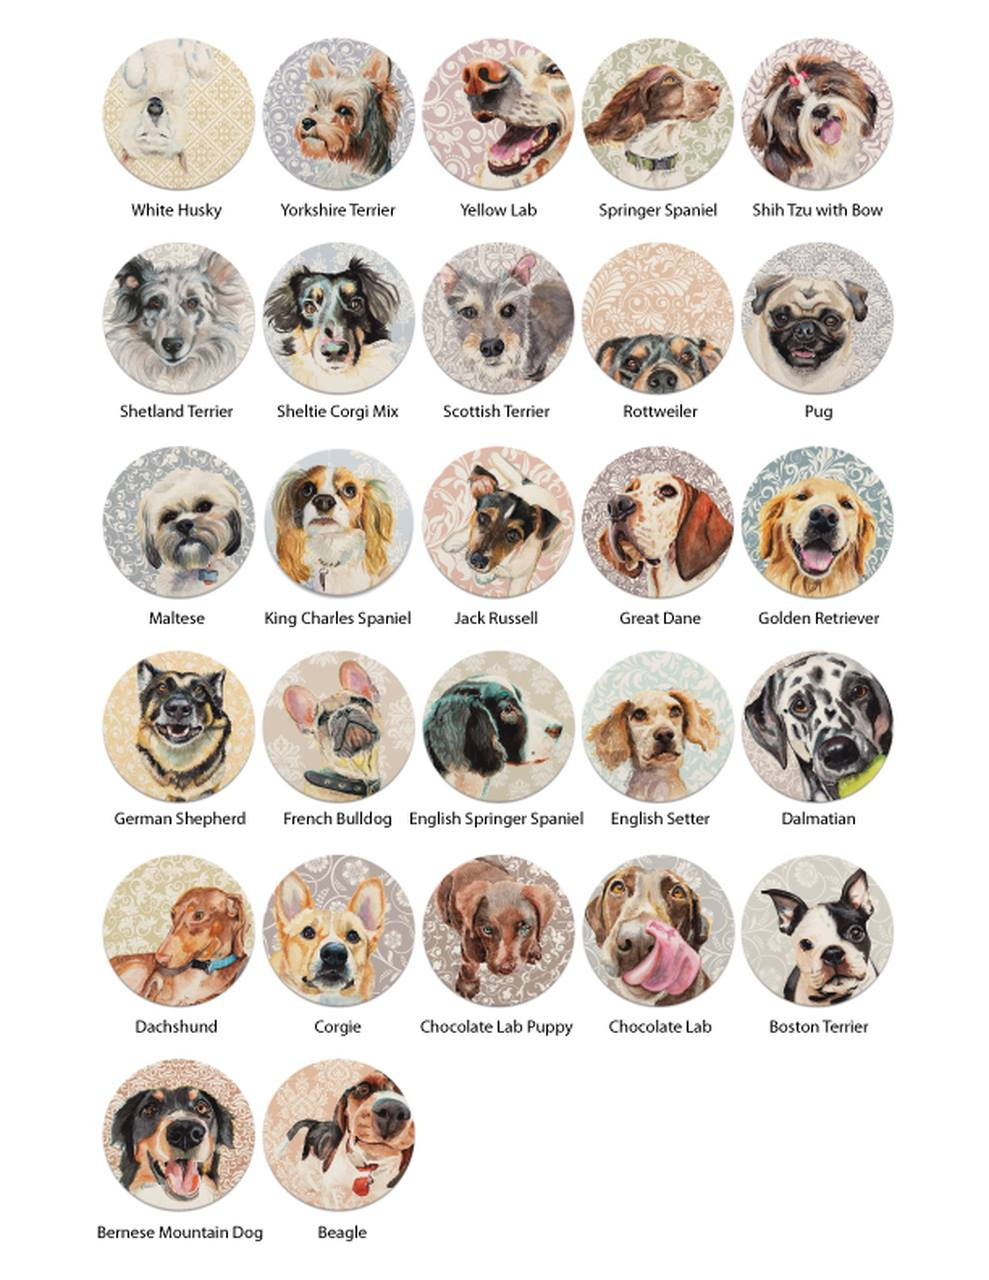 Brand New Coaster Sets by Coaster Stone!27 breeds to choose from. Get your set today! - If you don't see your breed, contact me!